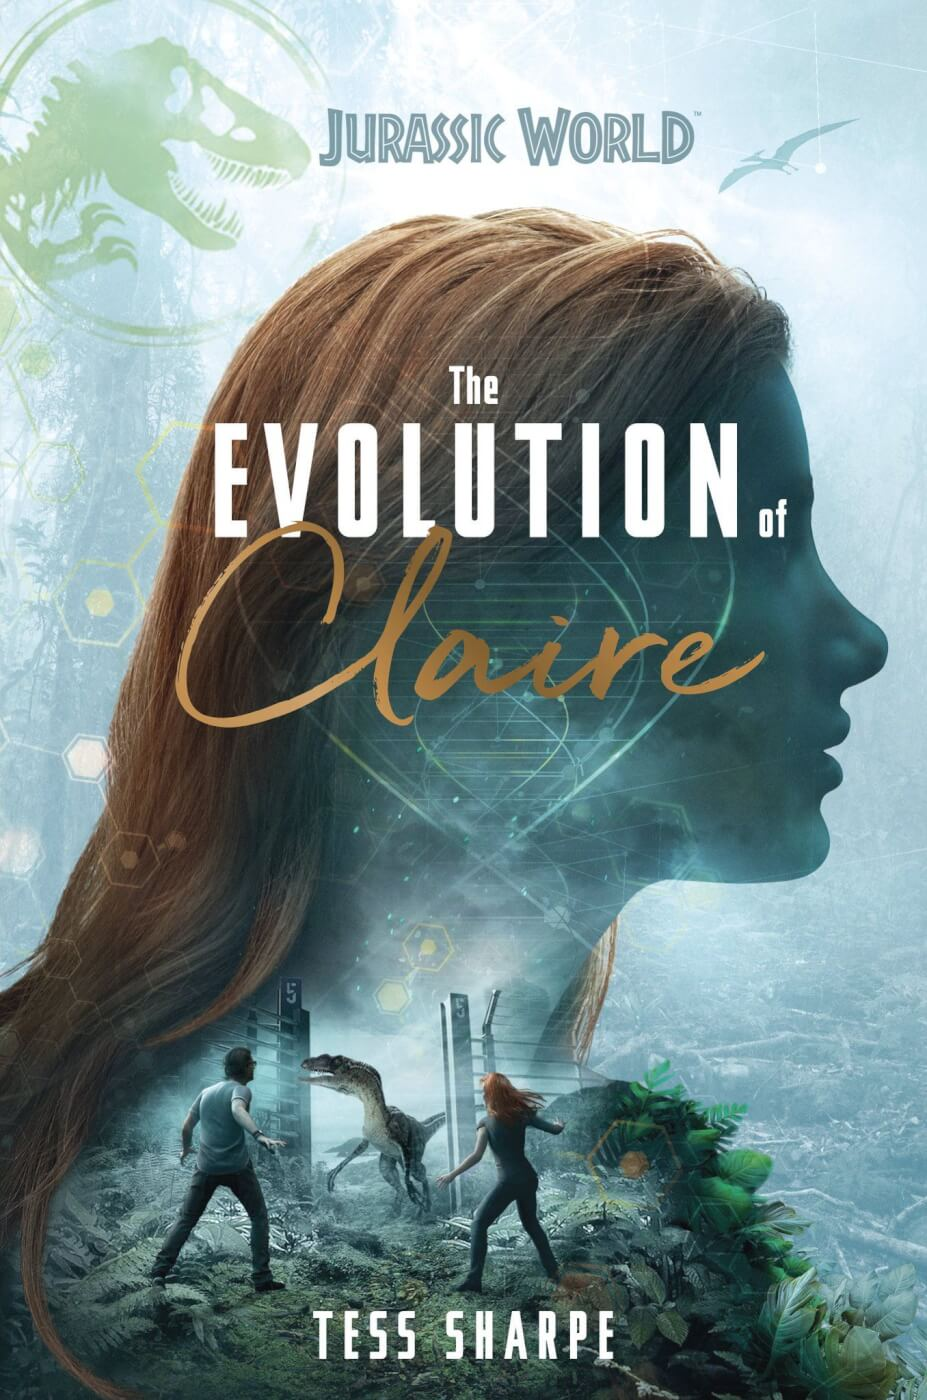 'Jurassic World: The Evolution of Claire' Review – the Universe Expands with This Exciting Prequel Novel!